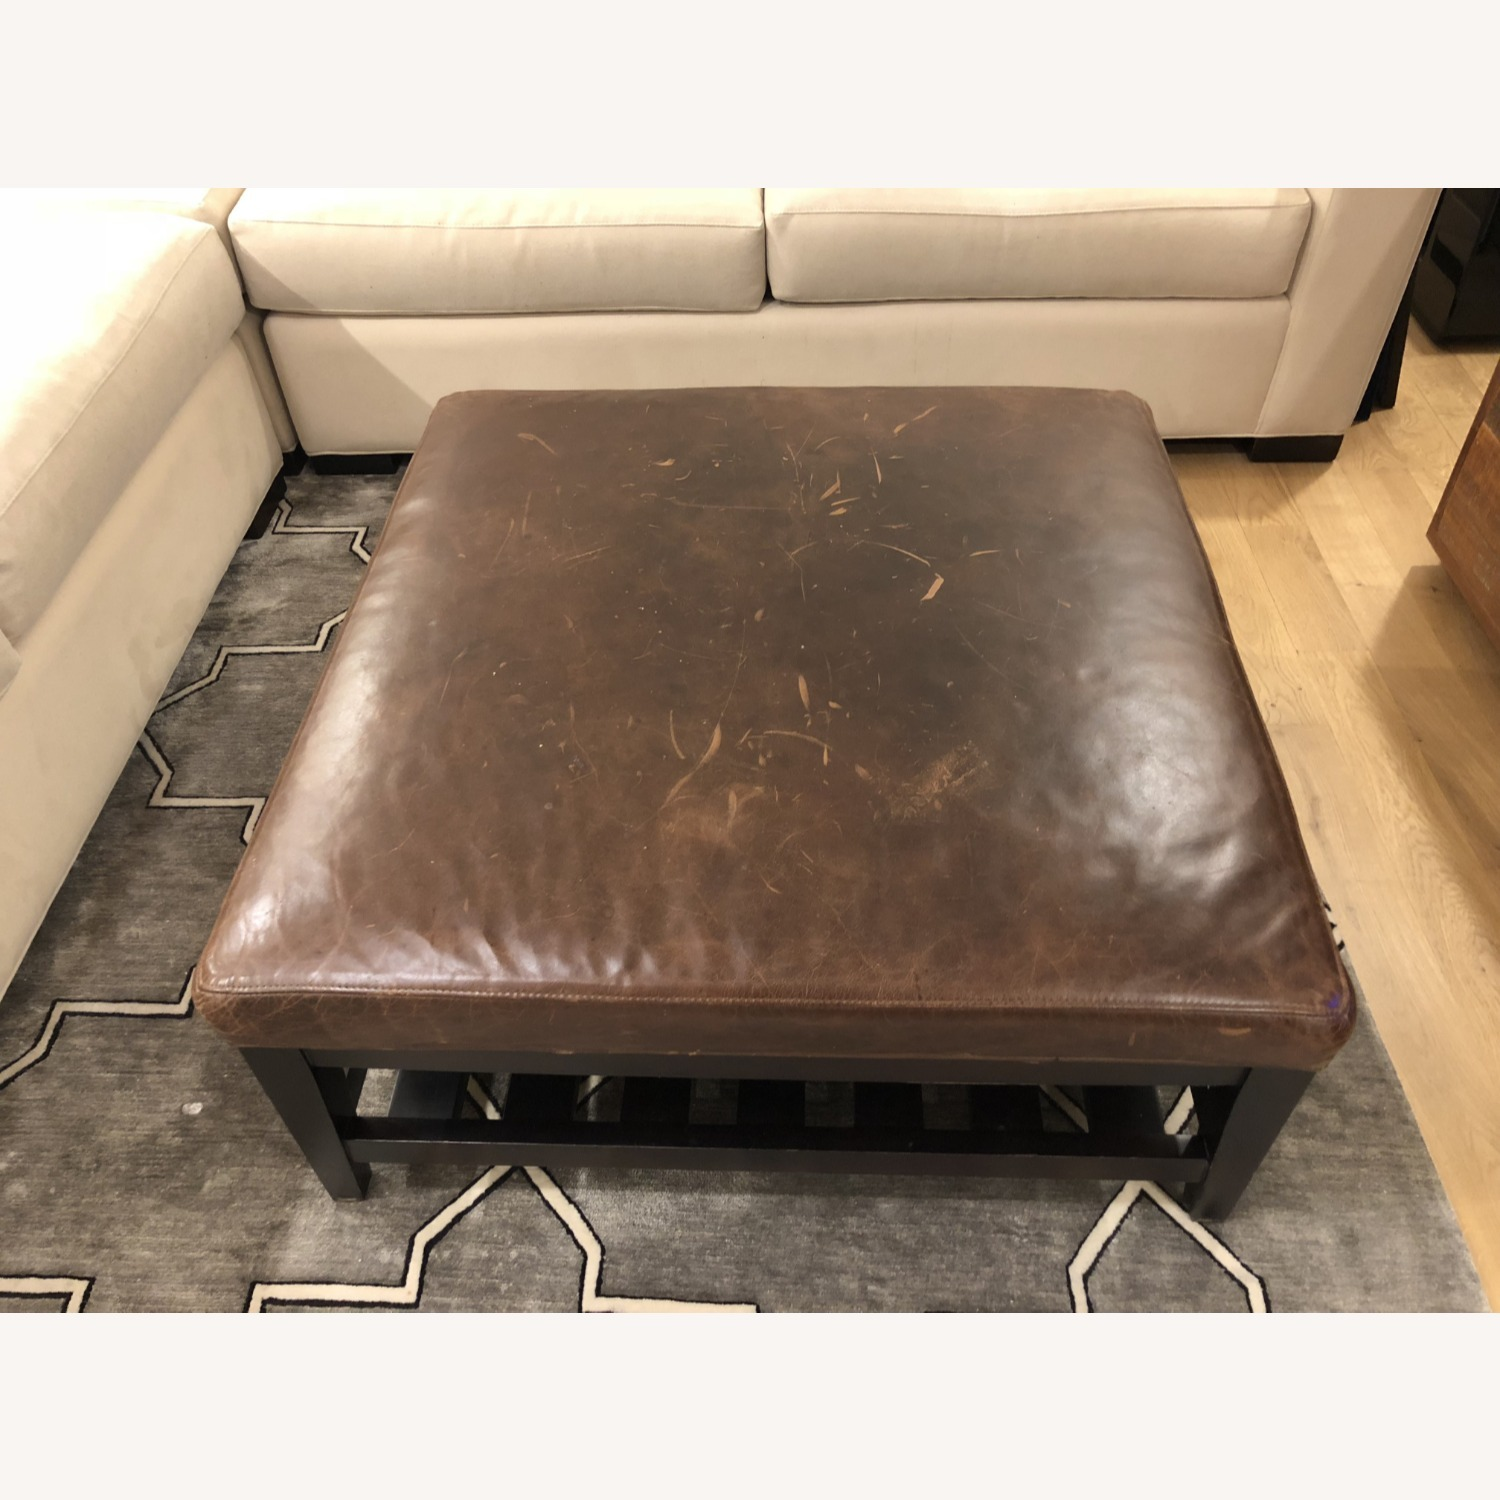 Crate & Barrel Leather & Wood Coffee Table/Ottoman - image-4